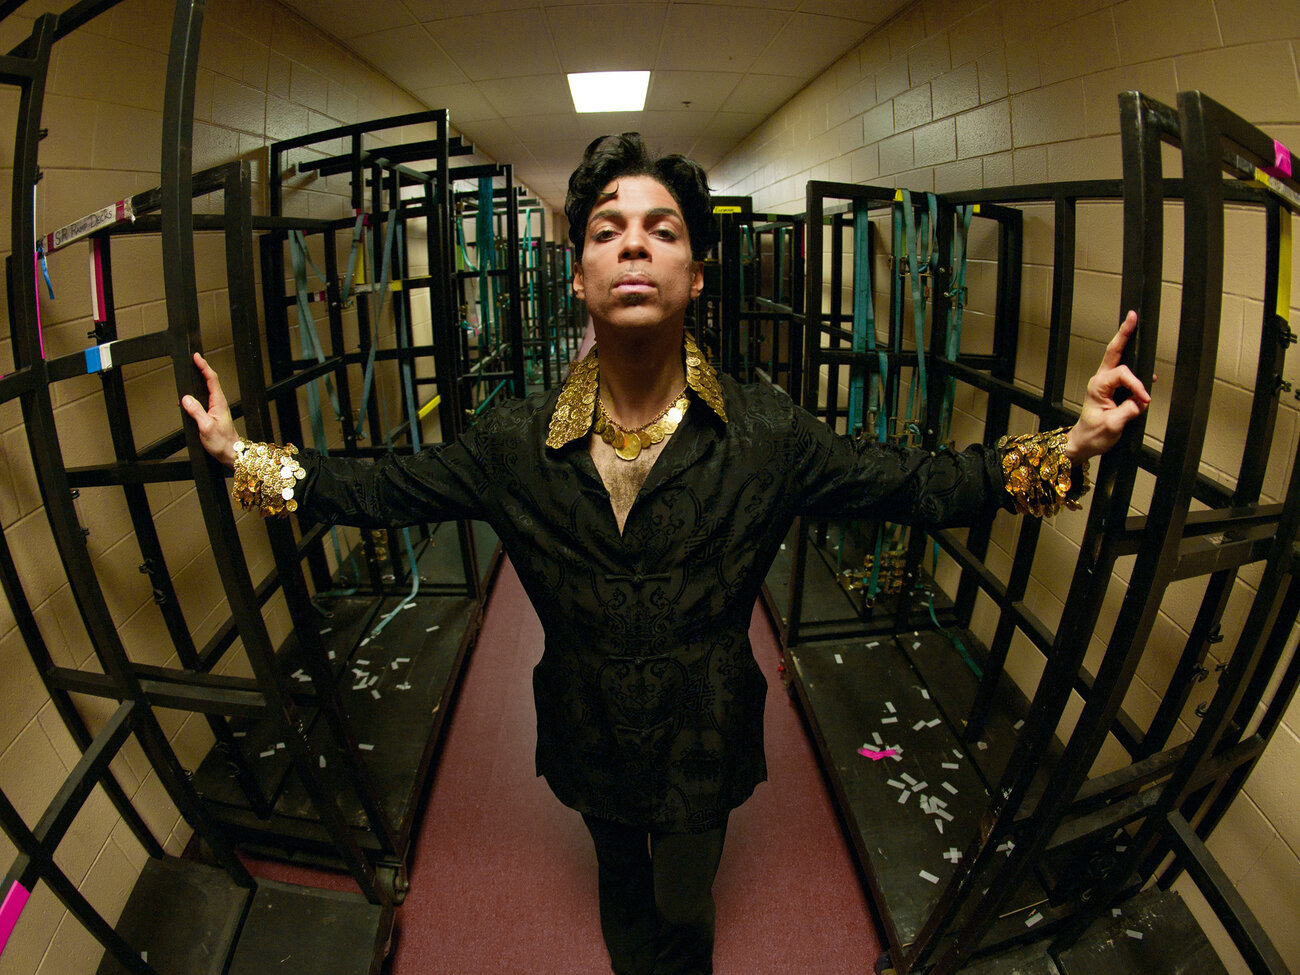 Backstage in Philadelphia, 2004. This shot was used to create the mural and cover for the album Lotusflow3r. (Afshin Shahidi/Prince: A Private View)